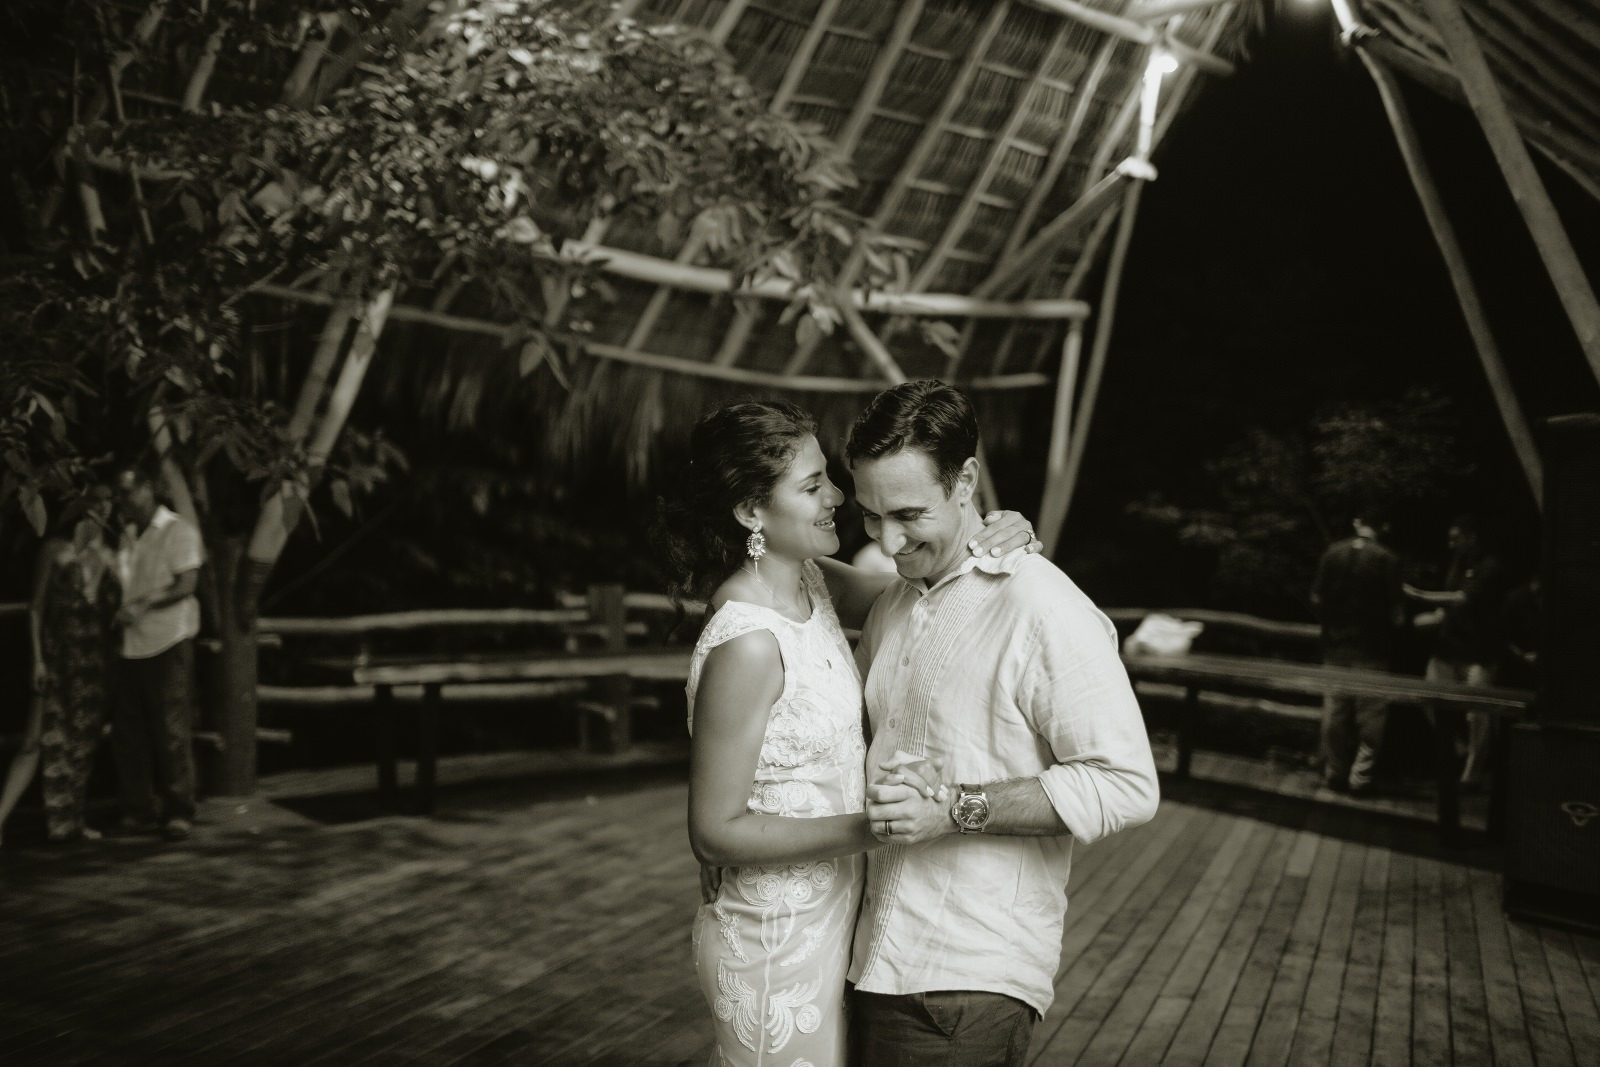 First Dance during the tropical wedding in Costa Rica